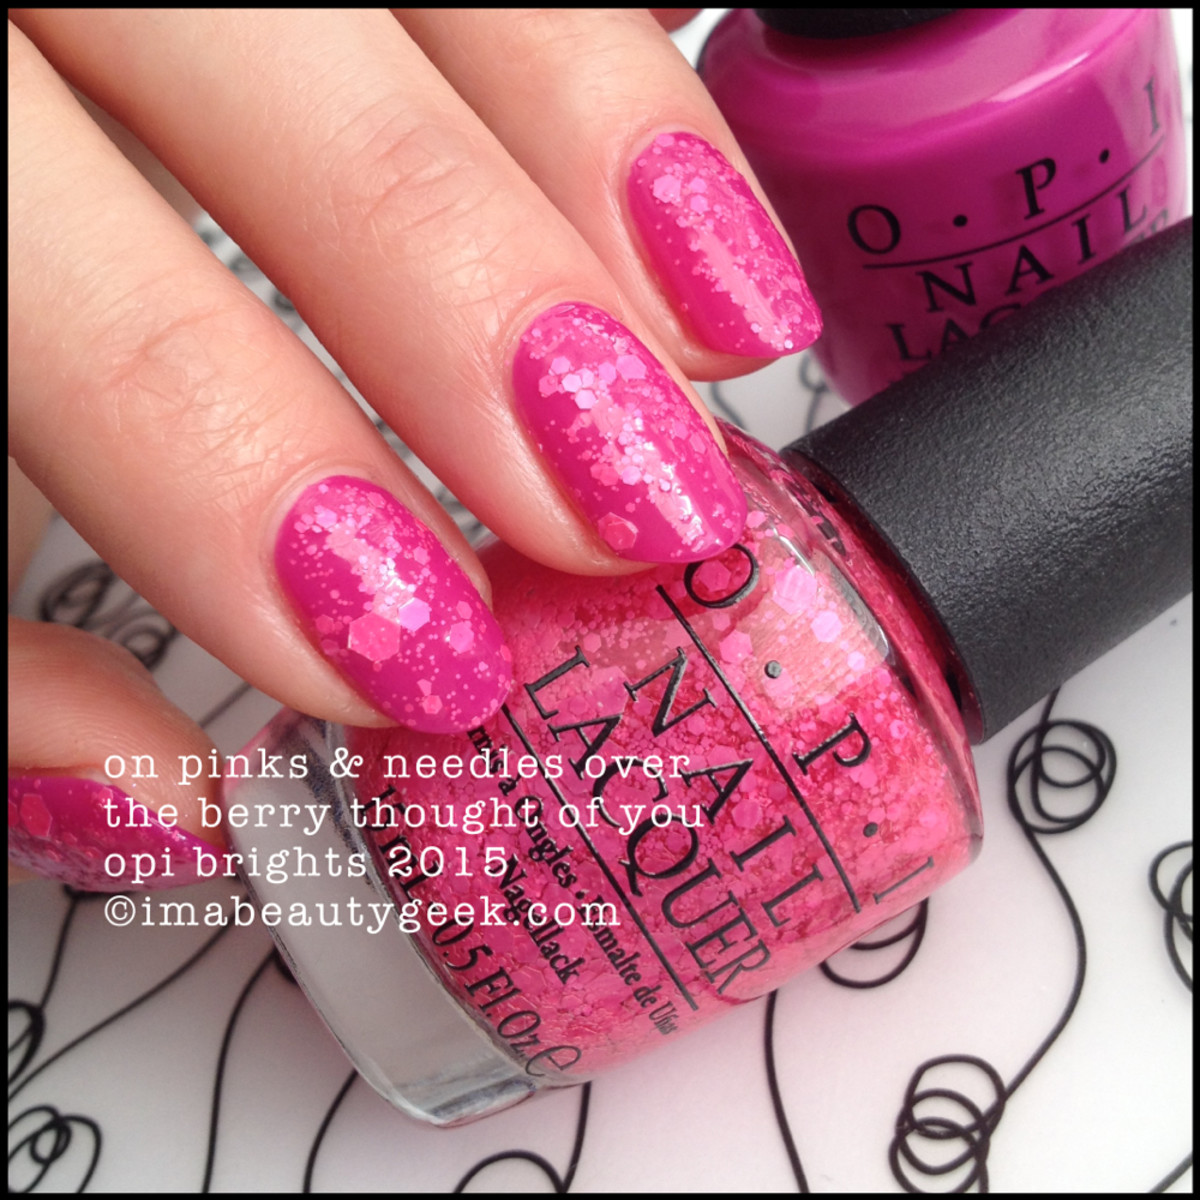 OPI BRIGHTS 2015: SWATCHES, REVIEW & COMPARISONS - Beautygeeks